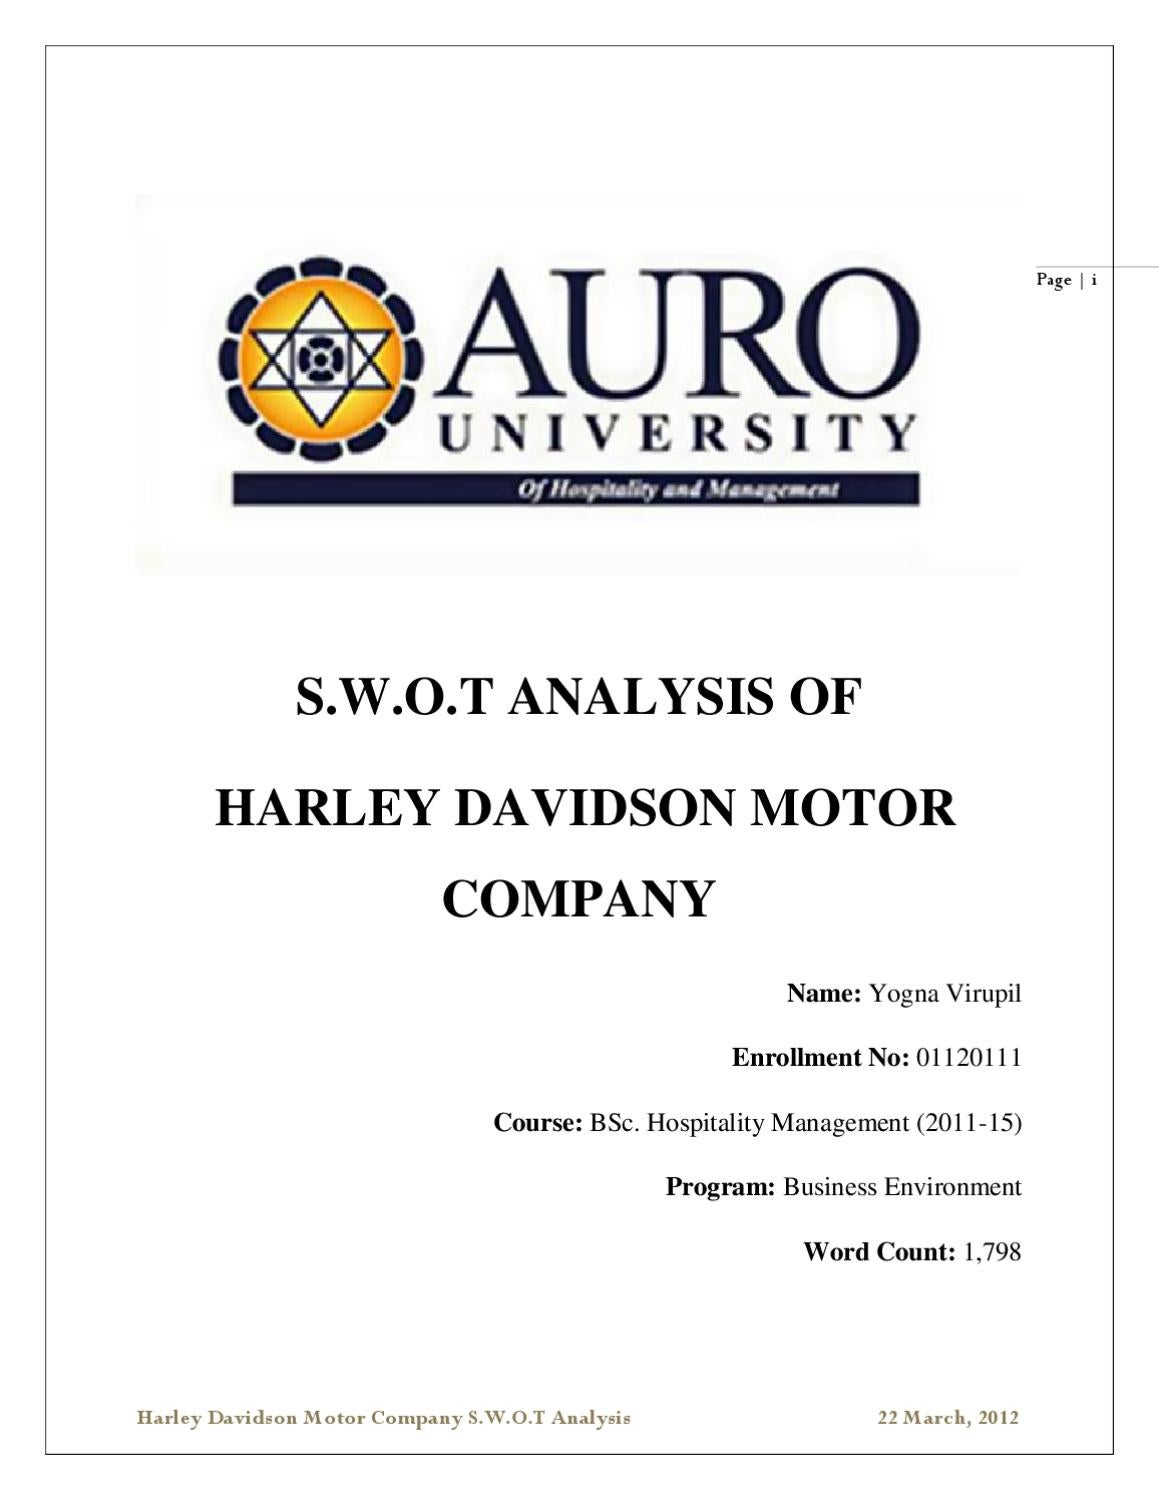 harley davidson case study swot analysis This case study harley davidson case study and other 63,000+ term papers retrieved april 20, 2017, from http://panmorecom/harley-davidson-swot-analysis harley.